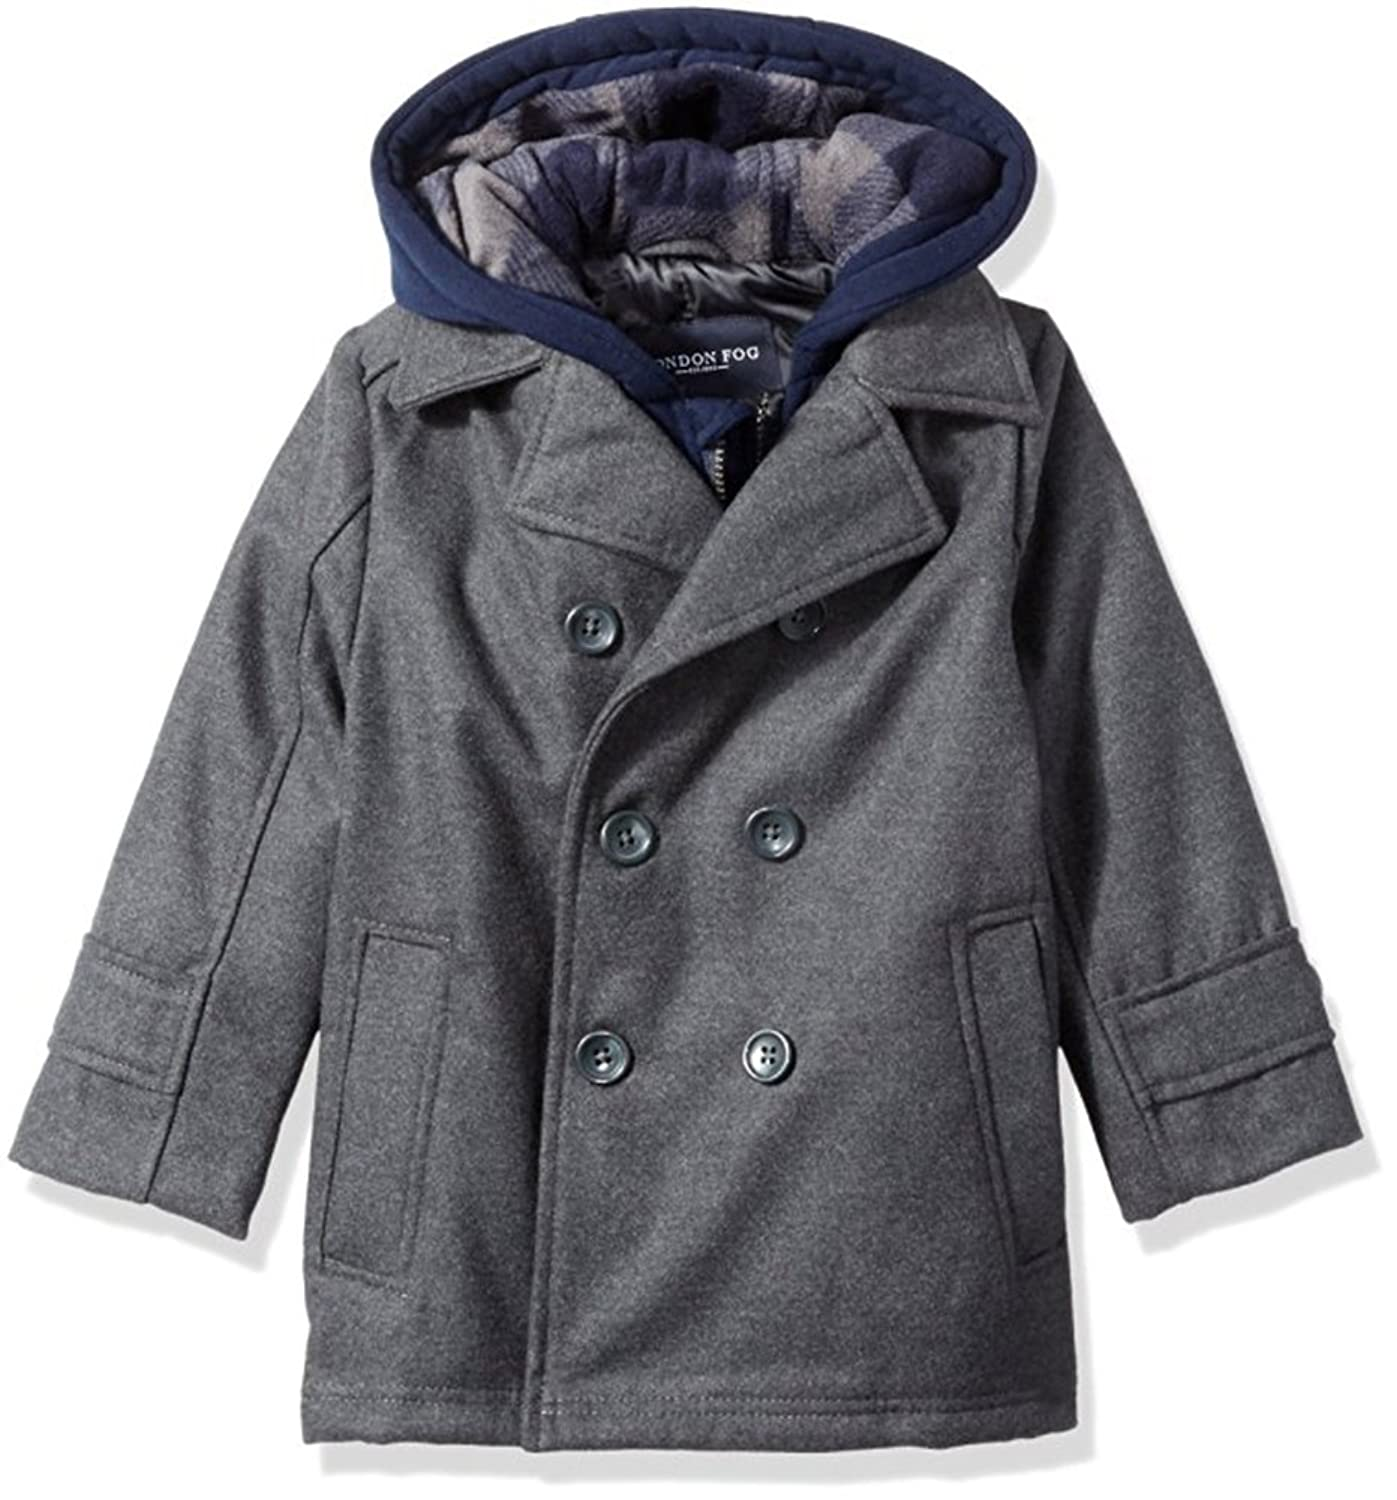 c827a497cff5 London Fog Baby Boys Double Breasted Faux Wool Hooded Coat ...